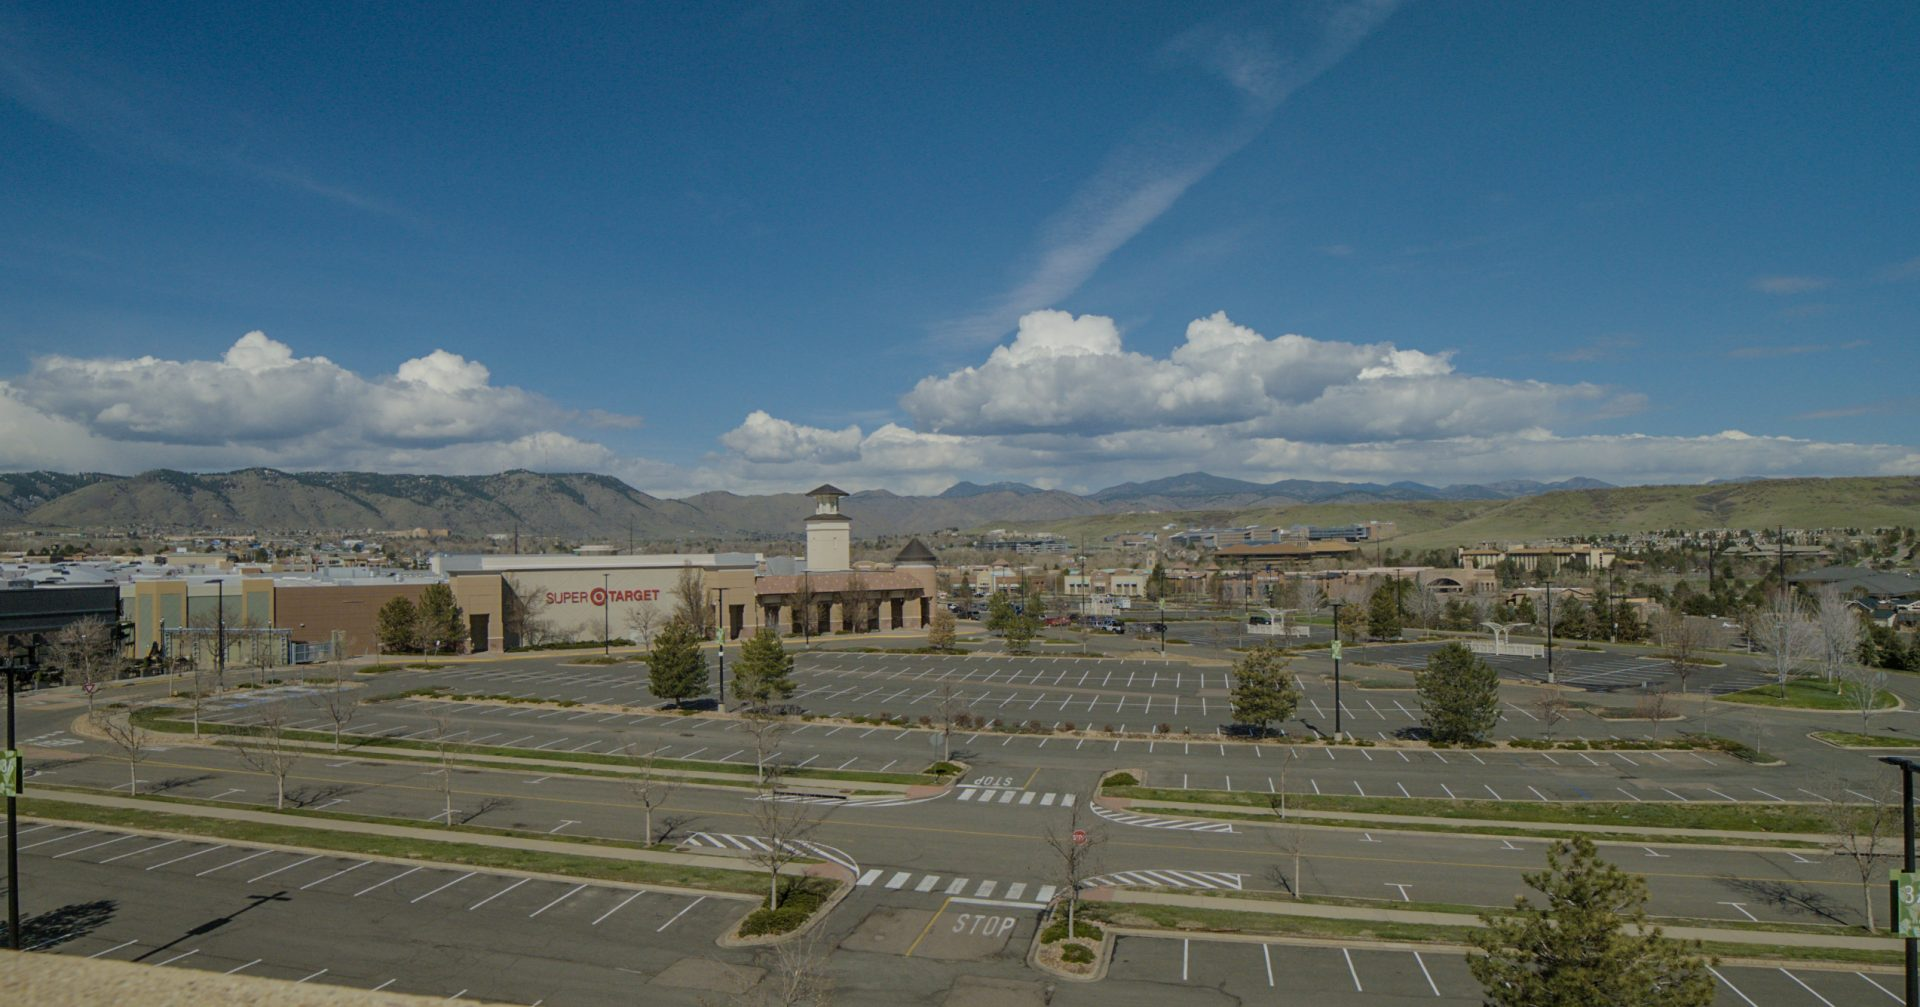 Screen Grab from Sony FS5MII + Atomos Inferno Shogun of the empty parking lots at Colorado Mills.